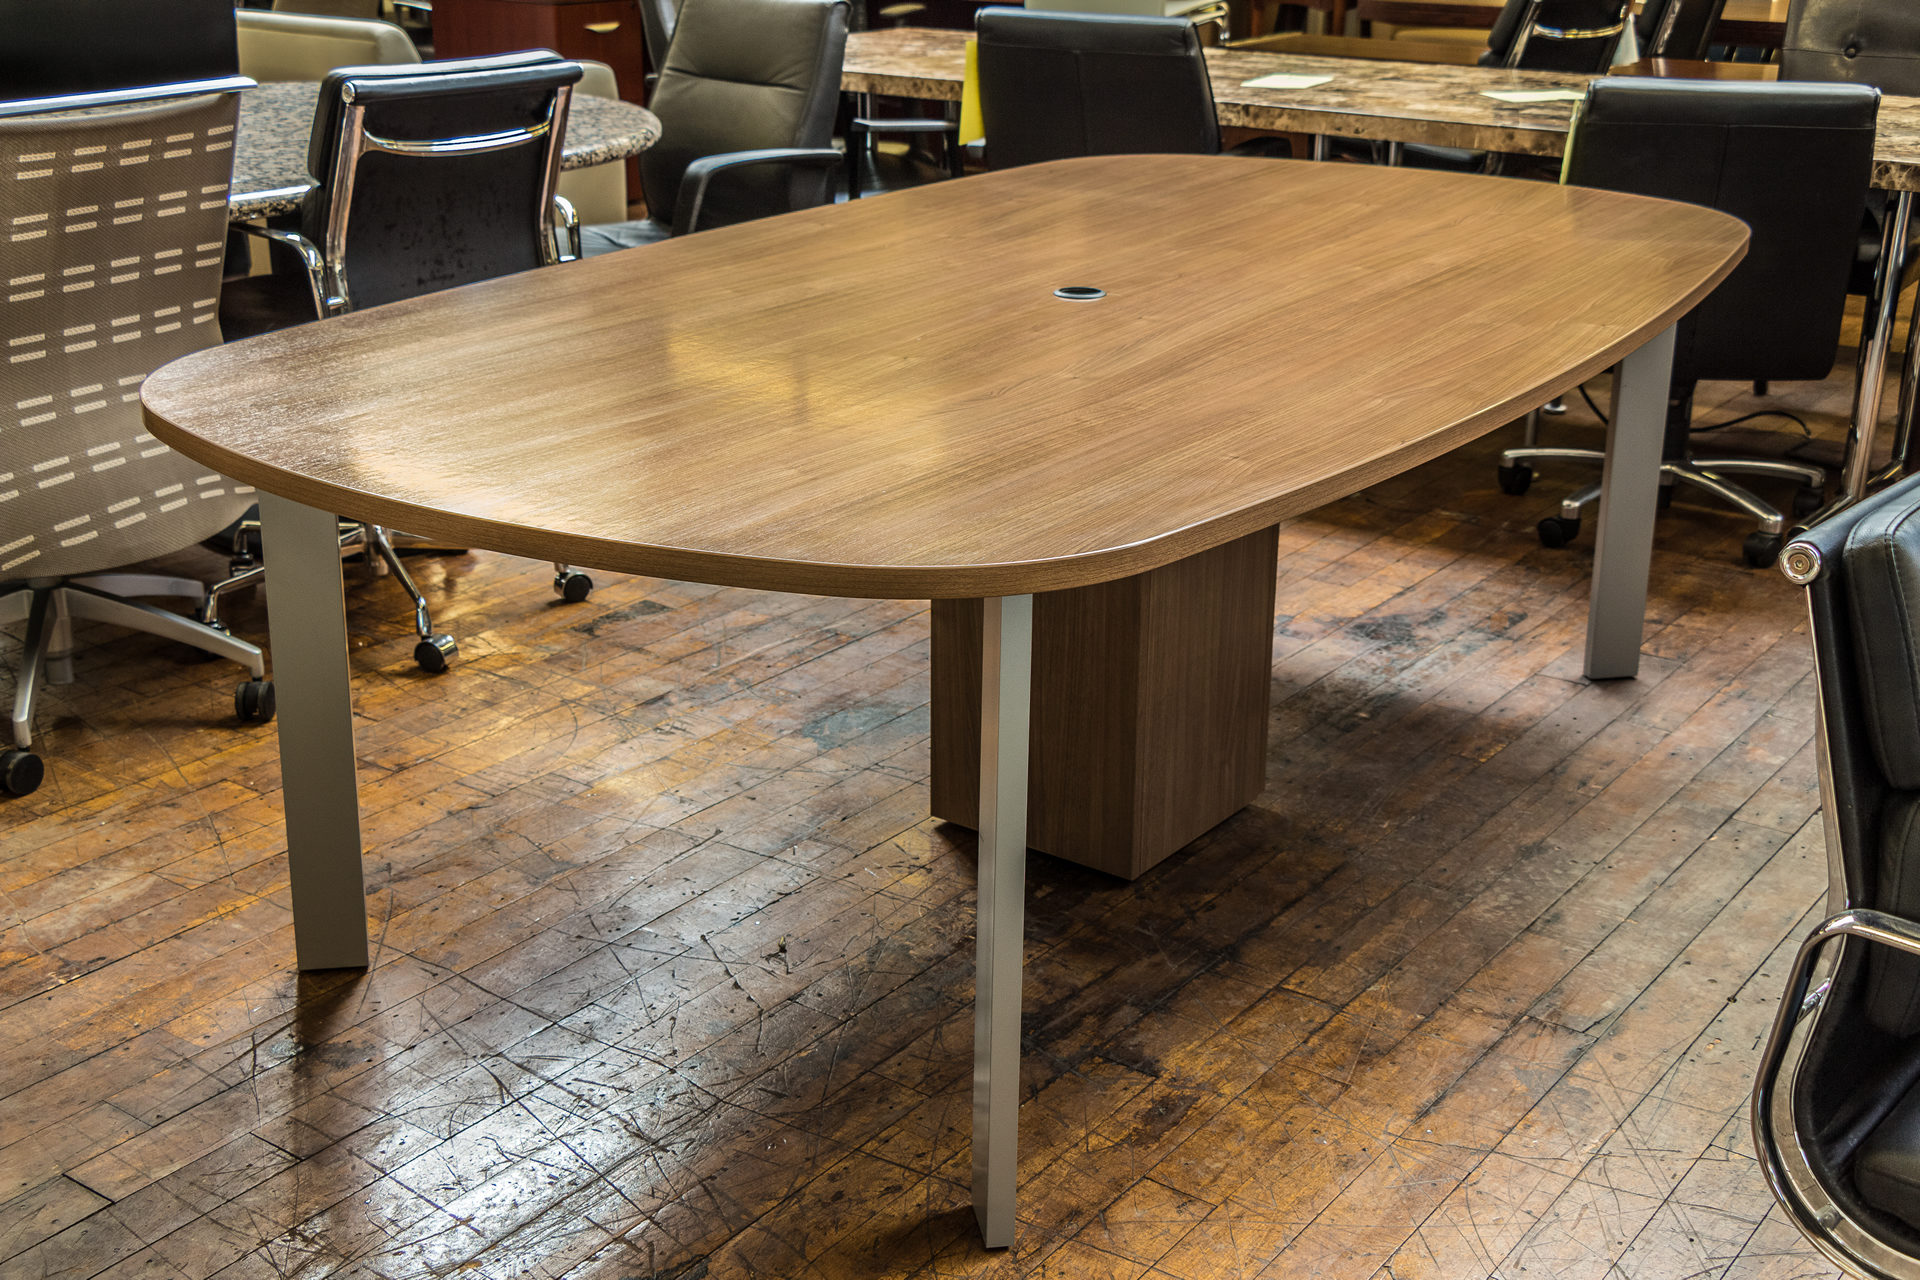 Haworth Planes Walnut 8′ x 4.5′ Conference Table